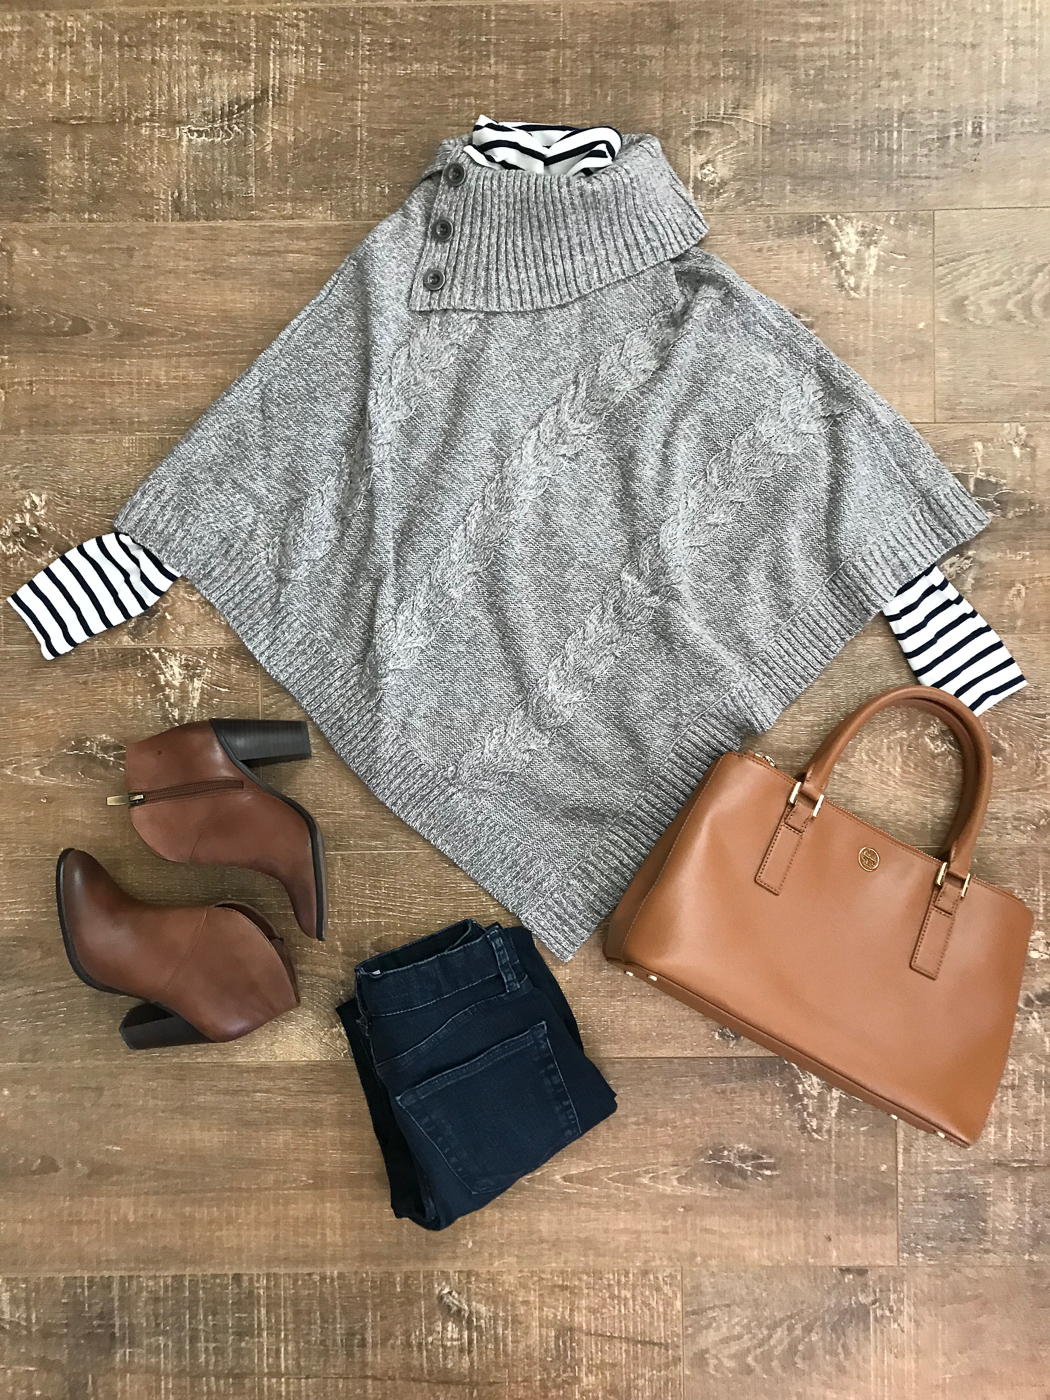 fall outfit gray cable knit poncho cognac booties camel tote